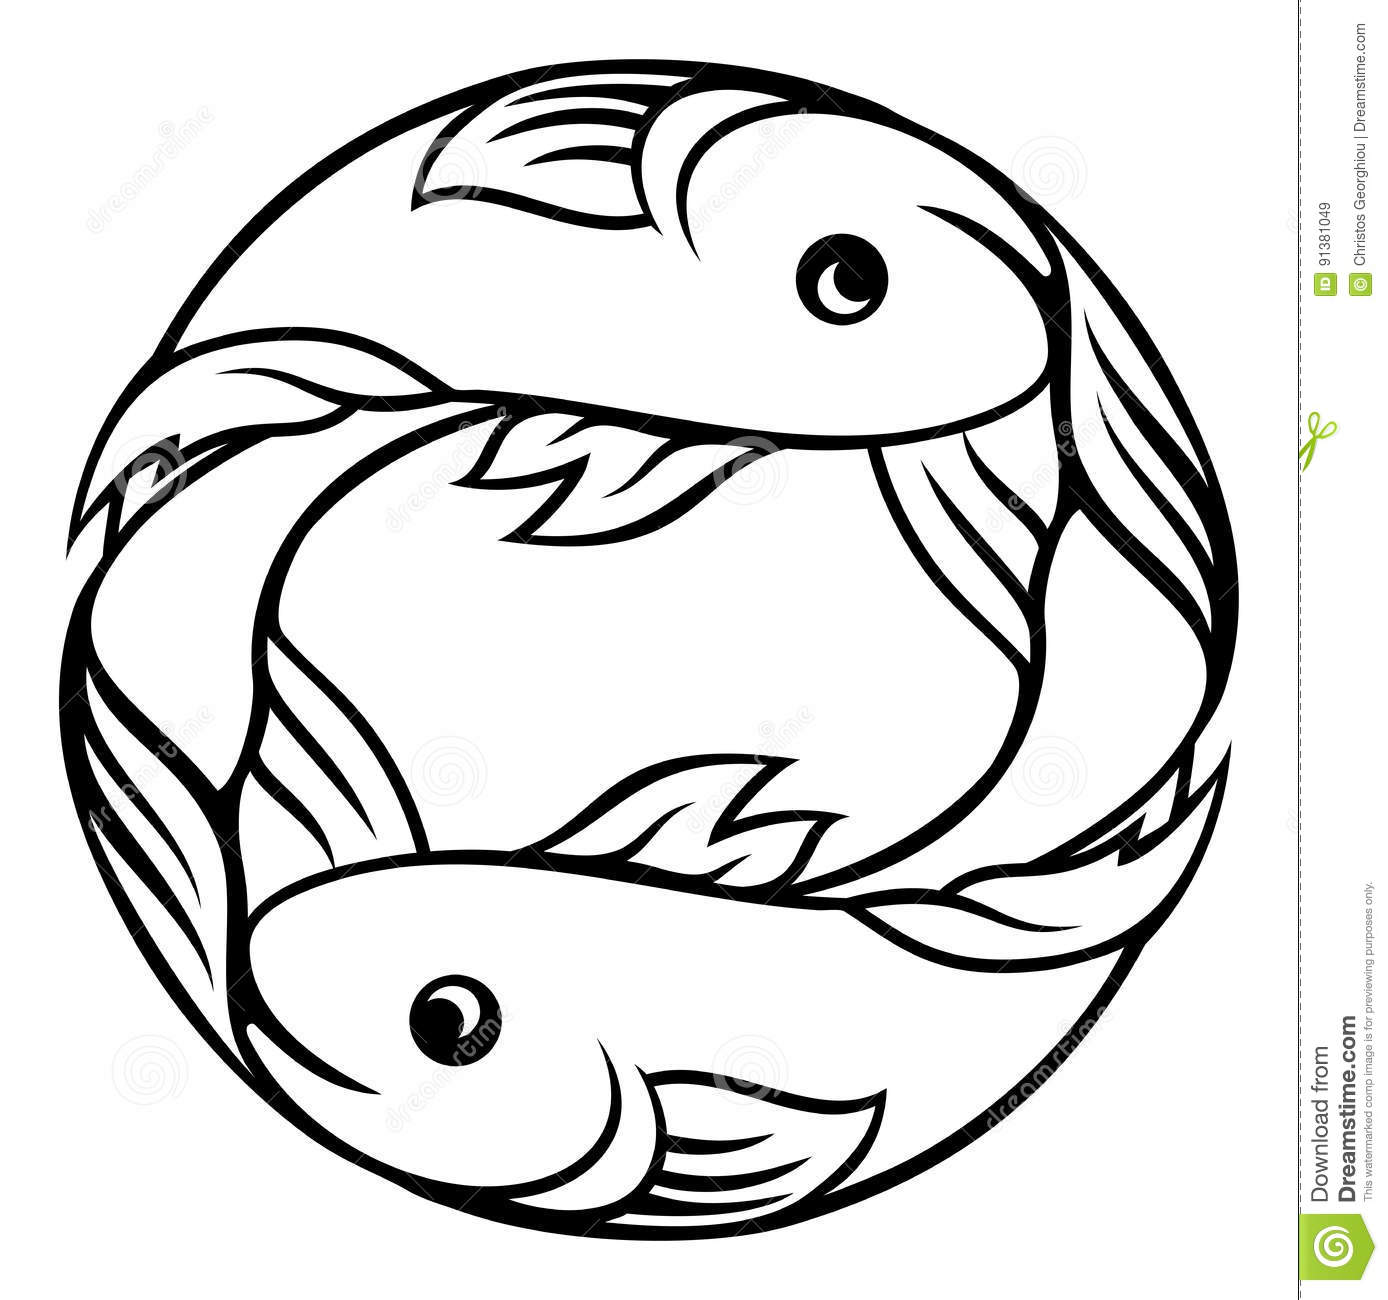 Zodiac signs pisces fish stock vector illustration of astrology zodiac signs pisces fish biocorpaavc Images